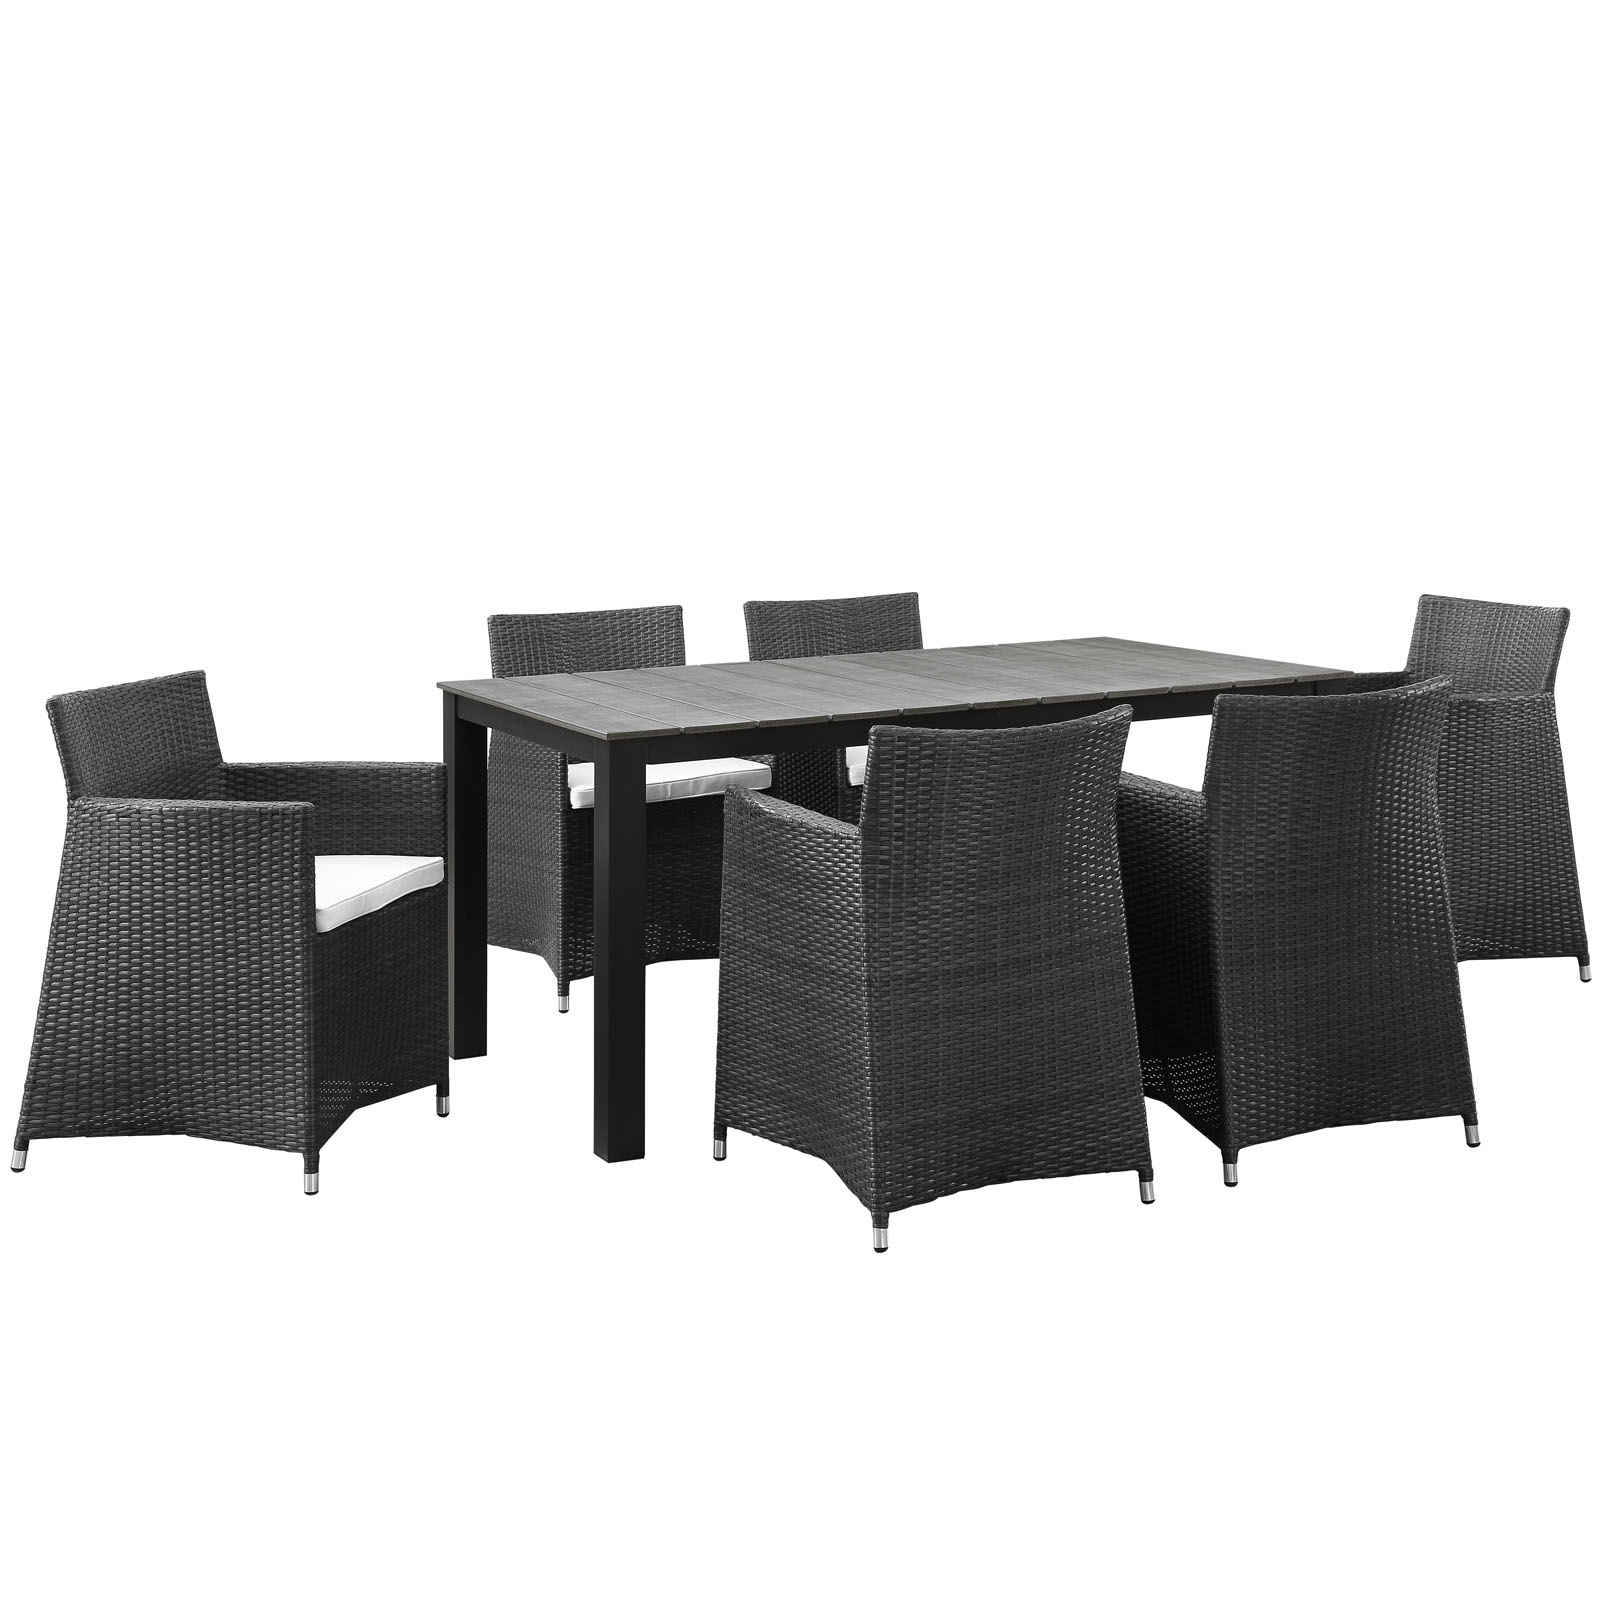 Modern Urban Contemporary 7 pcs Outdoor Patio Dining Room Set, Brown White Plastic by America Luxury